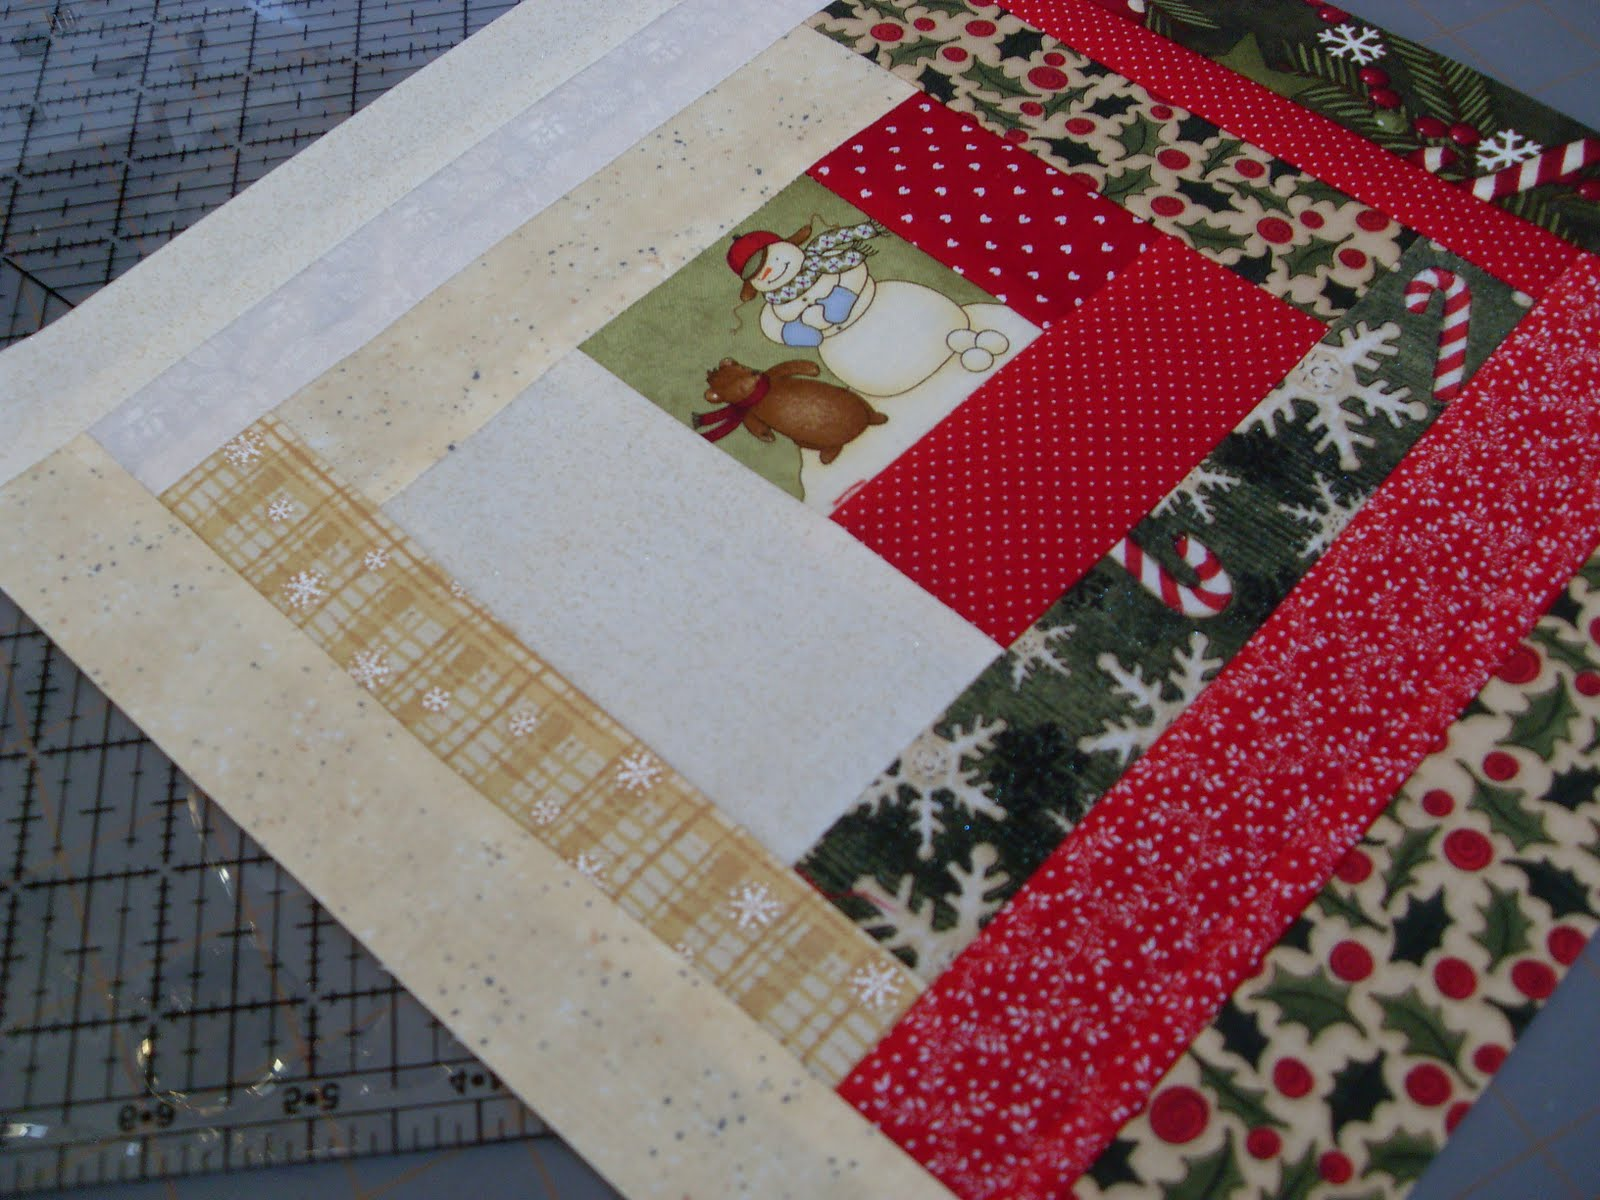 Log Cabin Christmas Quilt.Home Sweet Home Sneek Peek Of Christmas Log Cabin Quilt